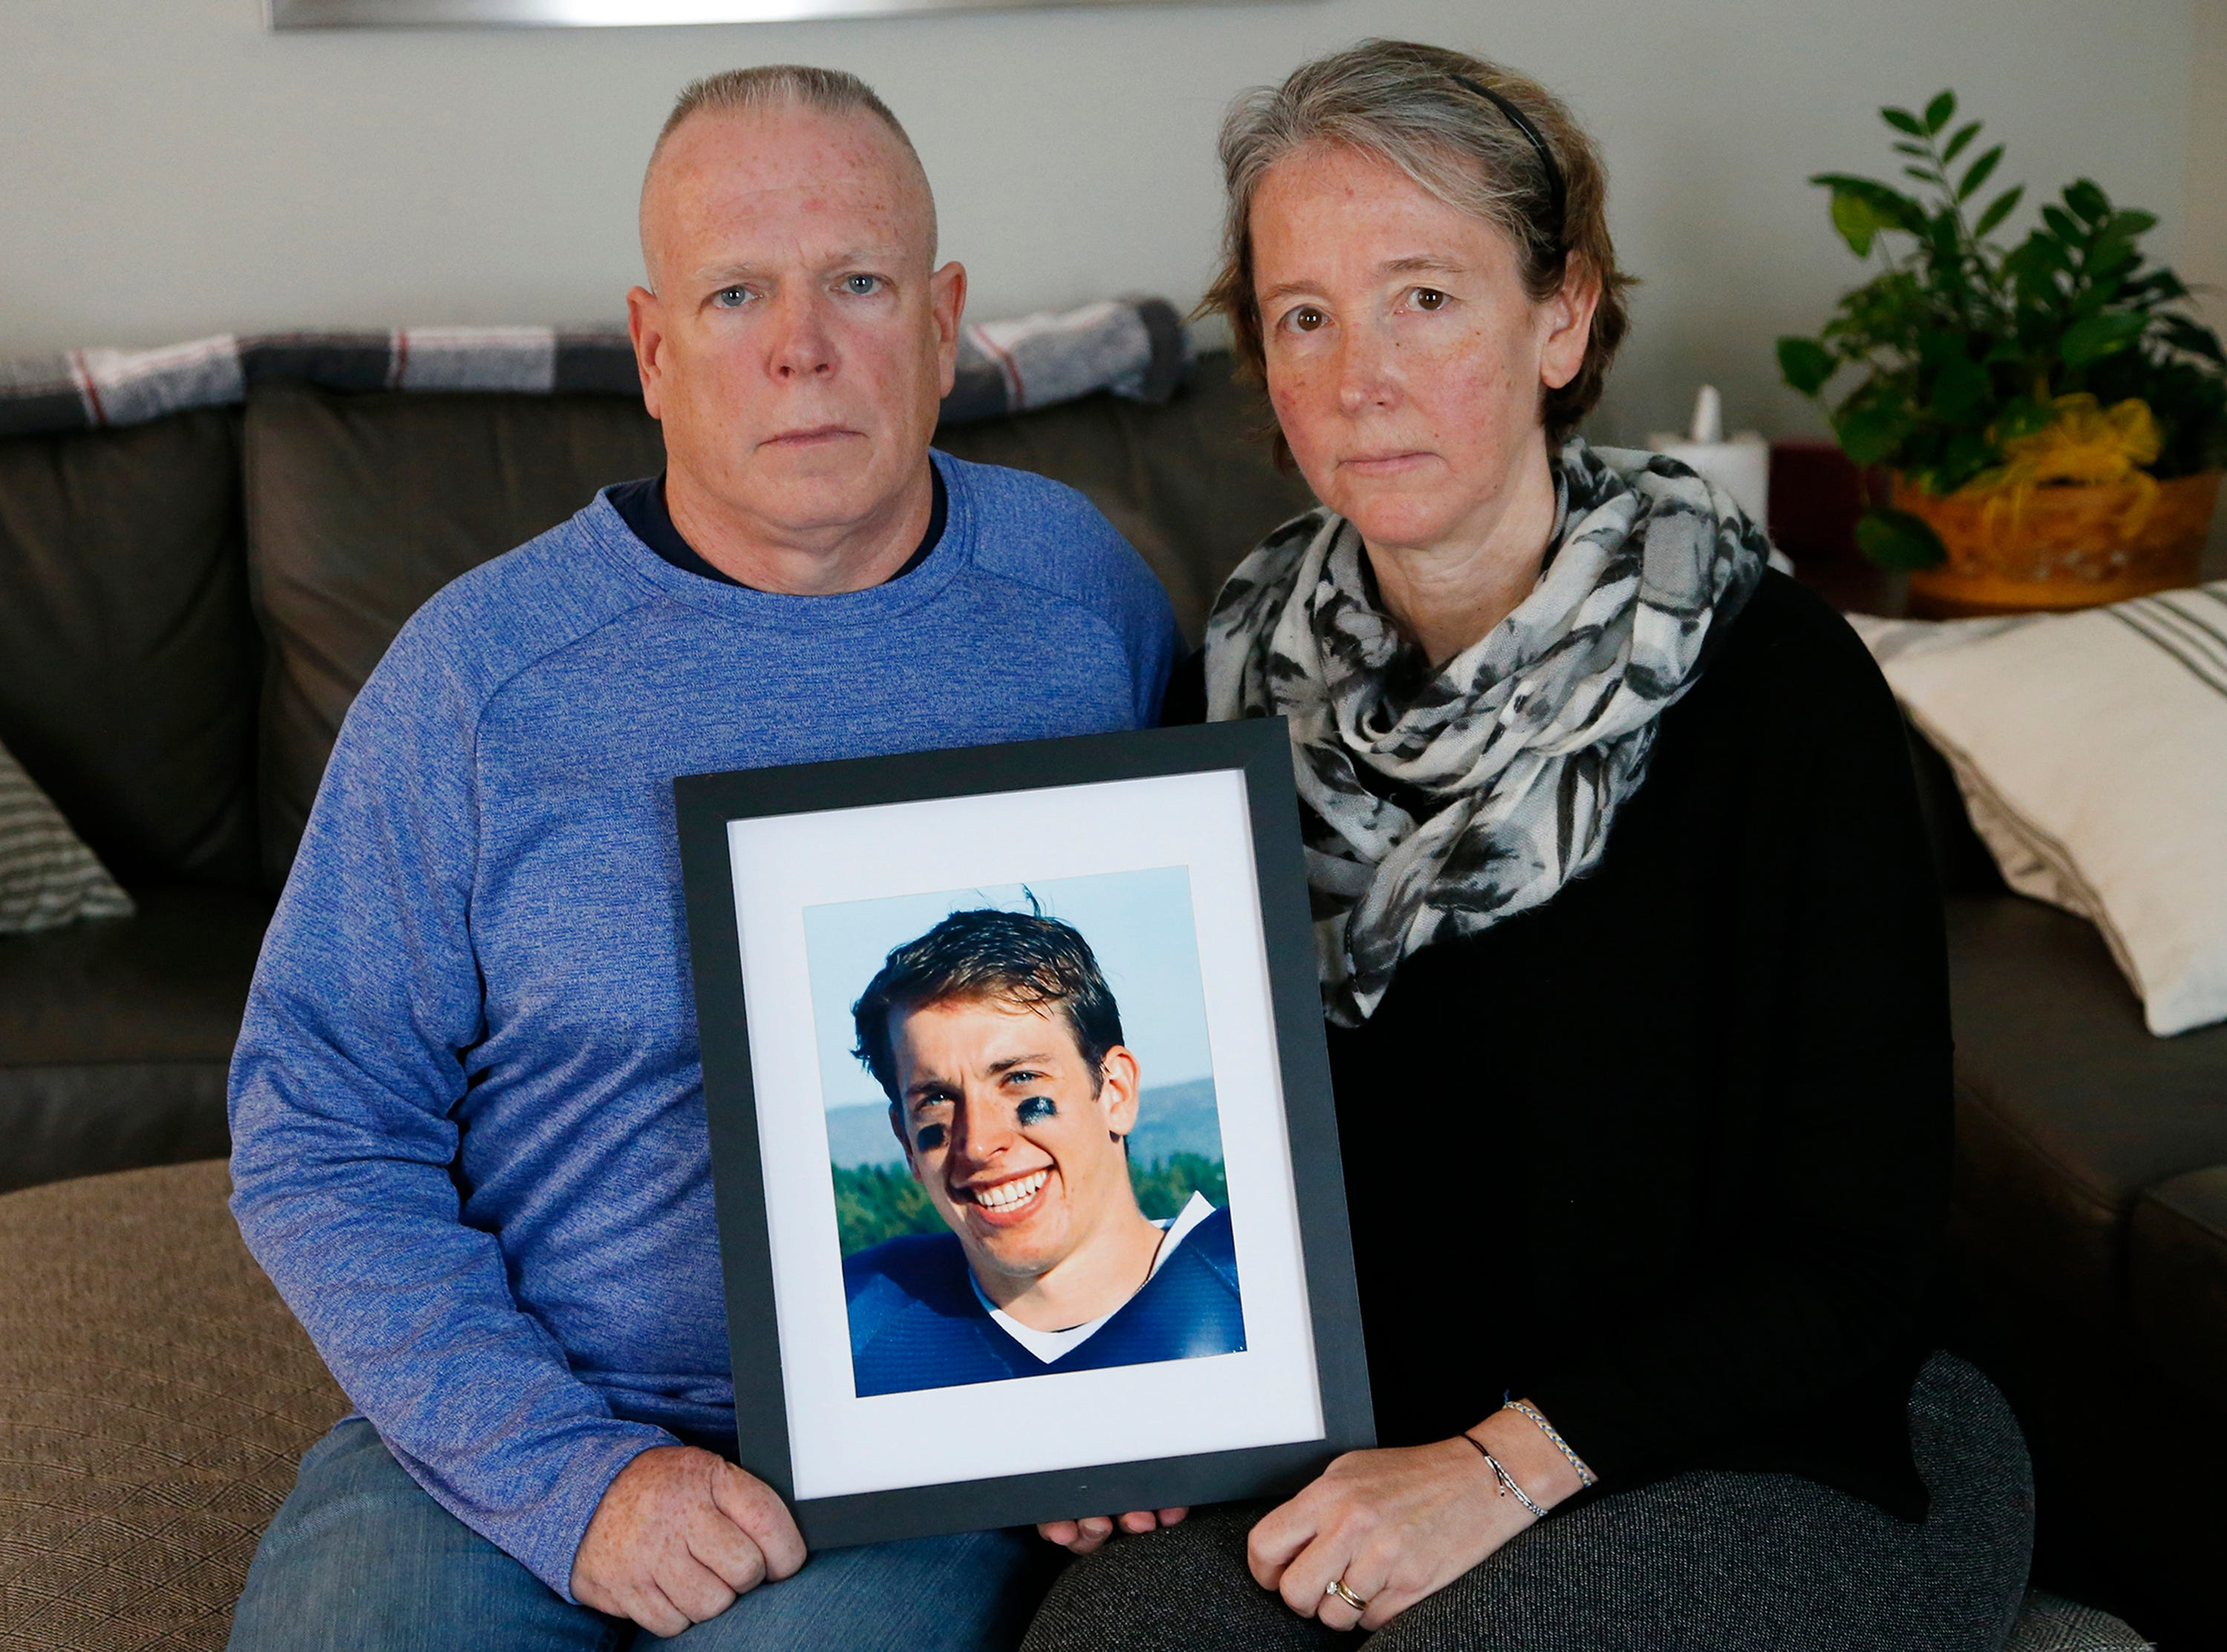 Concussions and contact sports: What these parents learned from their son s death